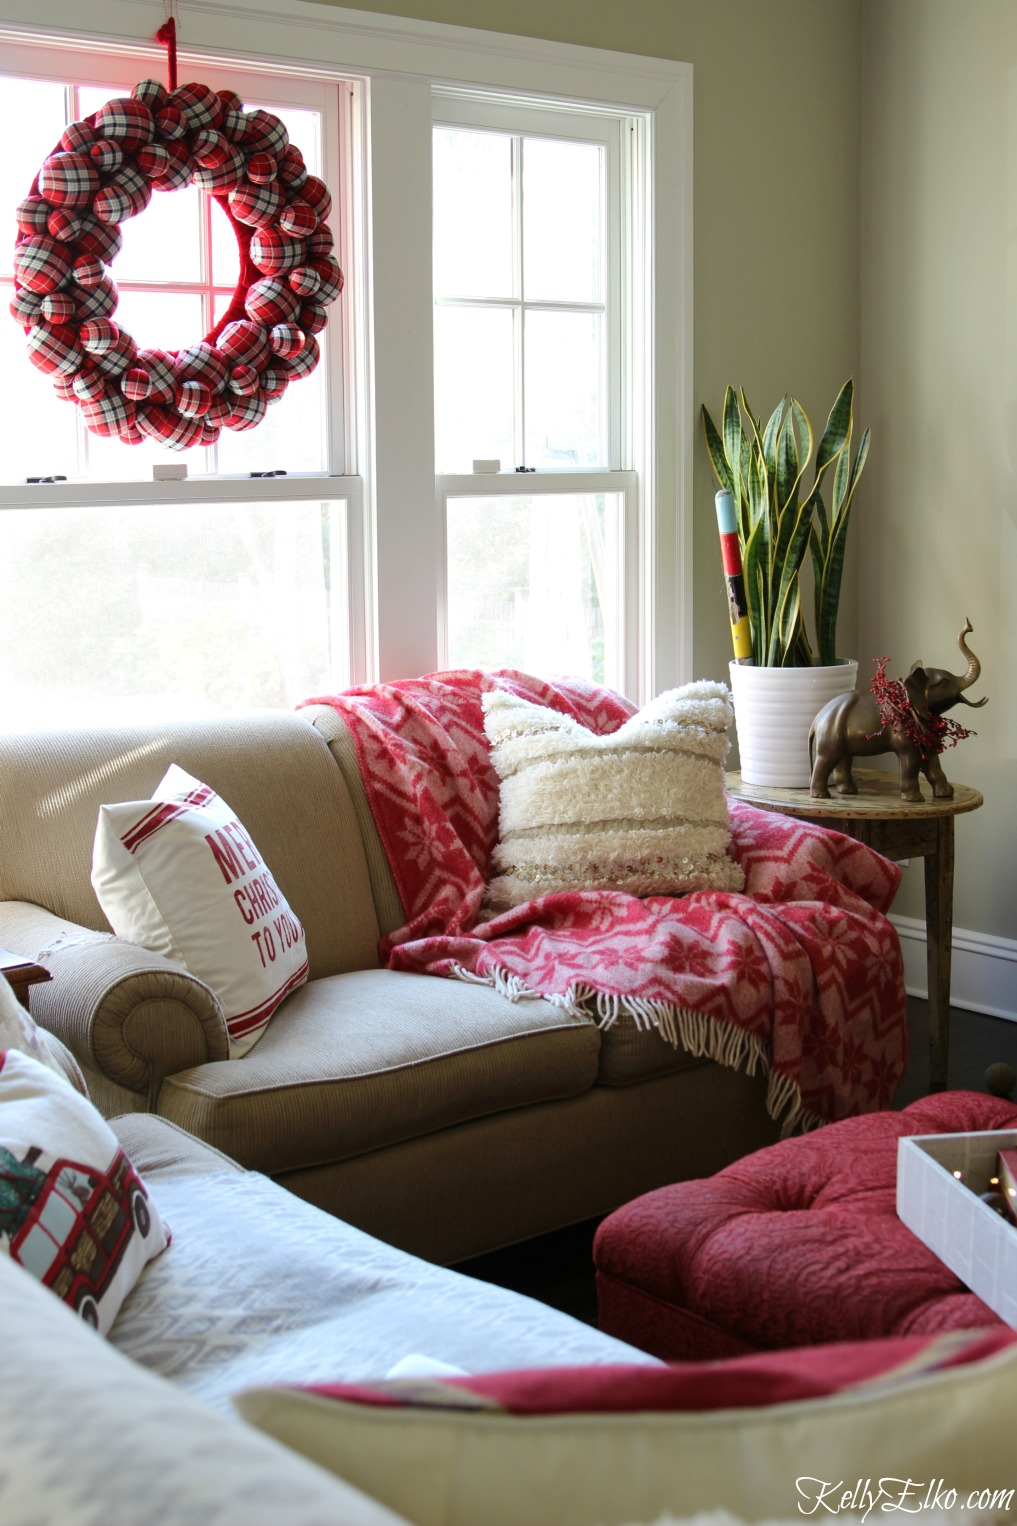 Love this festive red Christmas family room and the giant plaid wreath kellyelko.com